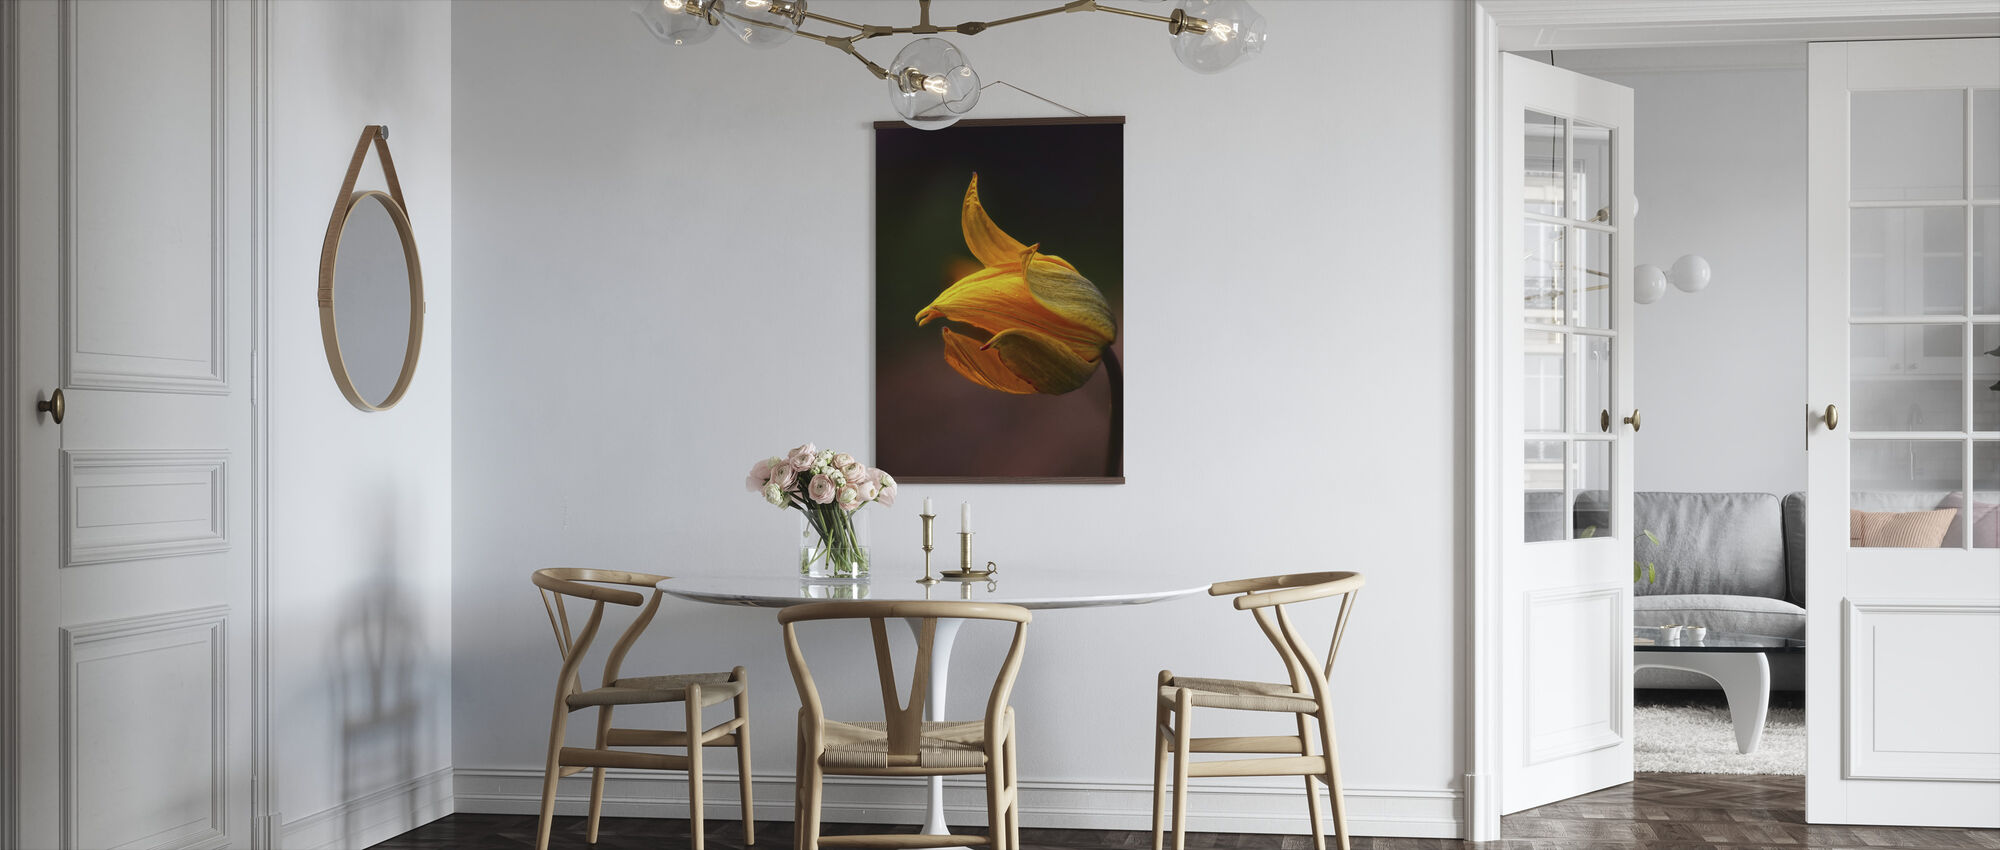 Orange Flower - Poster - Kitchen